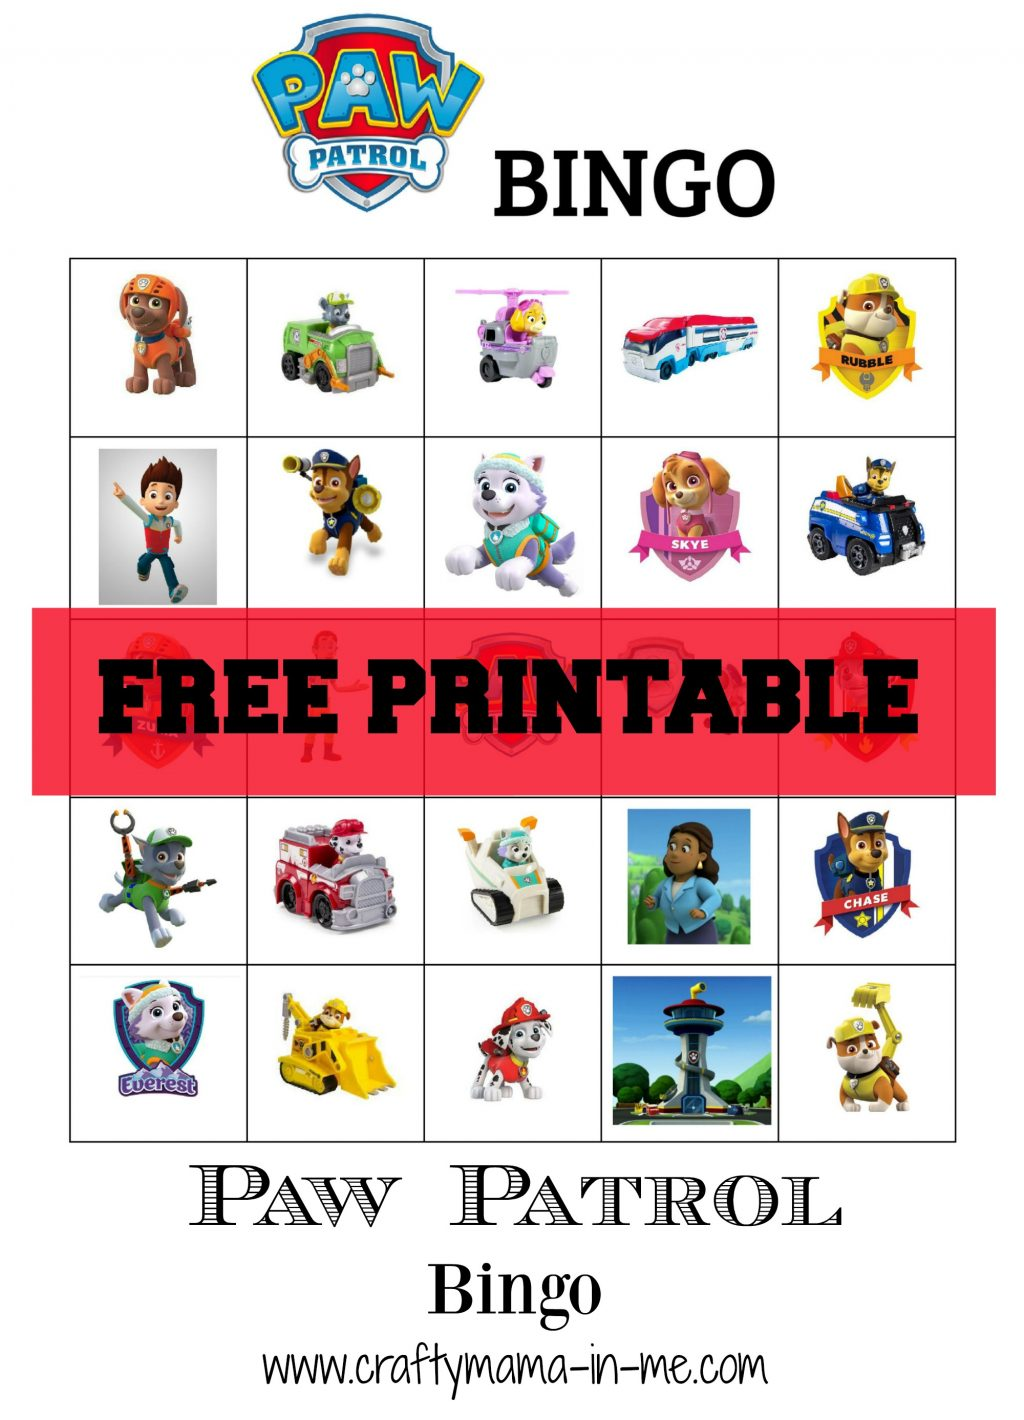 photograph relating to Paw Patrol Printable named Totally free Printable Paw Patrol Bingo - Cunning Mama in just ME!